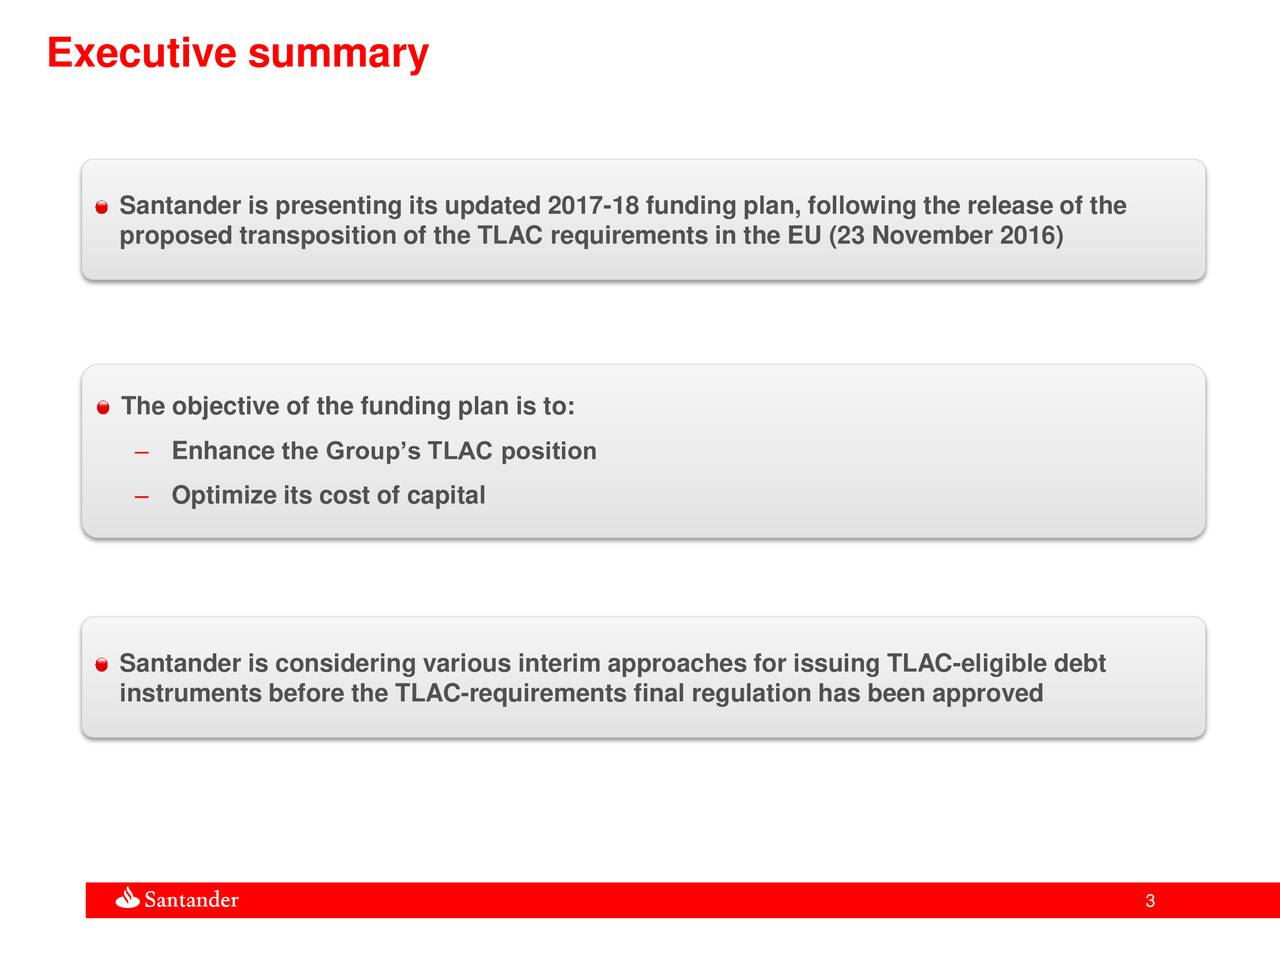 Santander is presenting its updated 2017-18 funding plan, following the release of the proposed transposition of the TLAC requirements in the EU (23 November 2016) The objective of the funding plan is to: Enhance the Groups TLAC position Optimize its cost of capital Santander is considering various interim approaches for issuing TLAC-eligible debt instruments before the TLAC-requirements final regulation has been approved 3